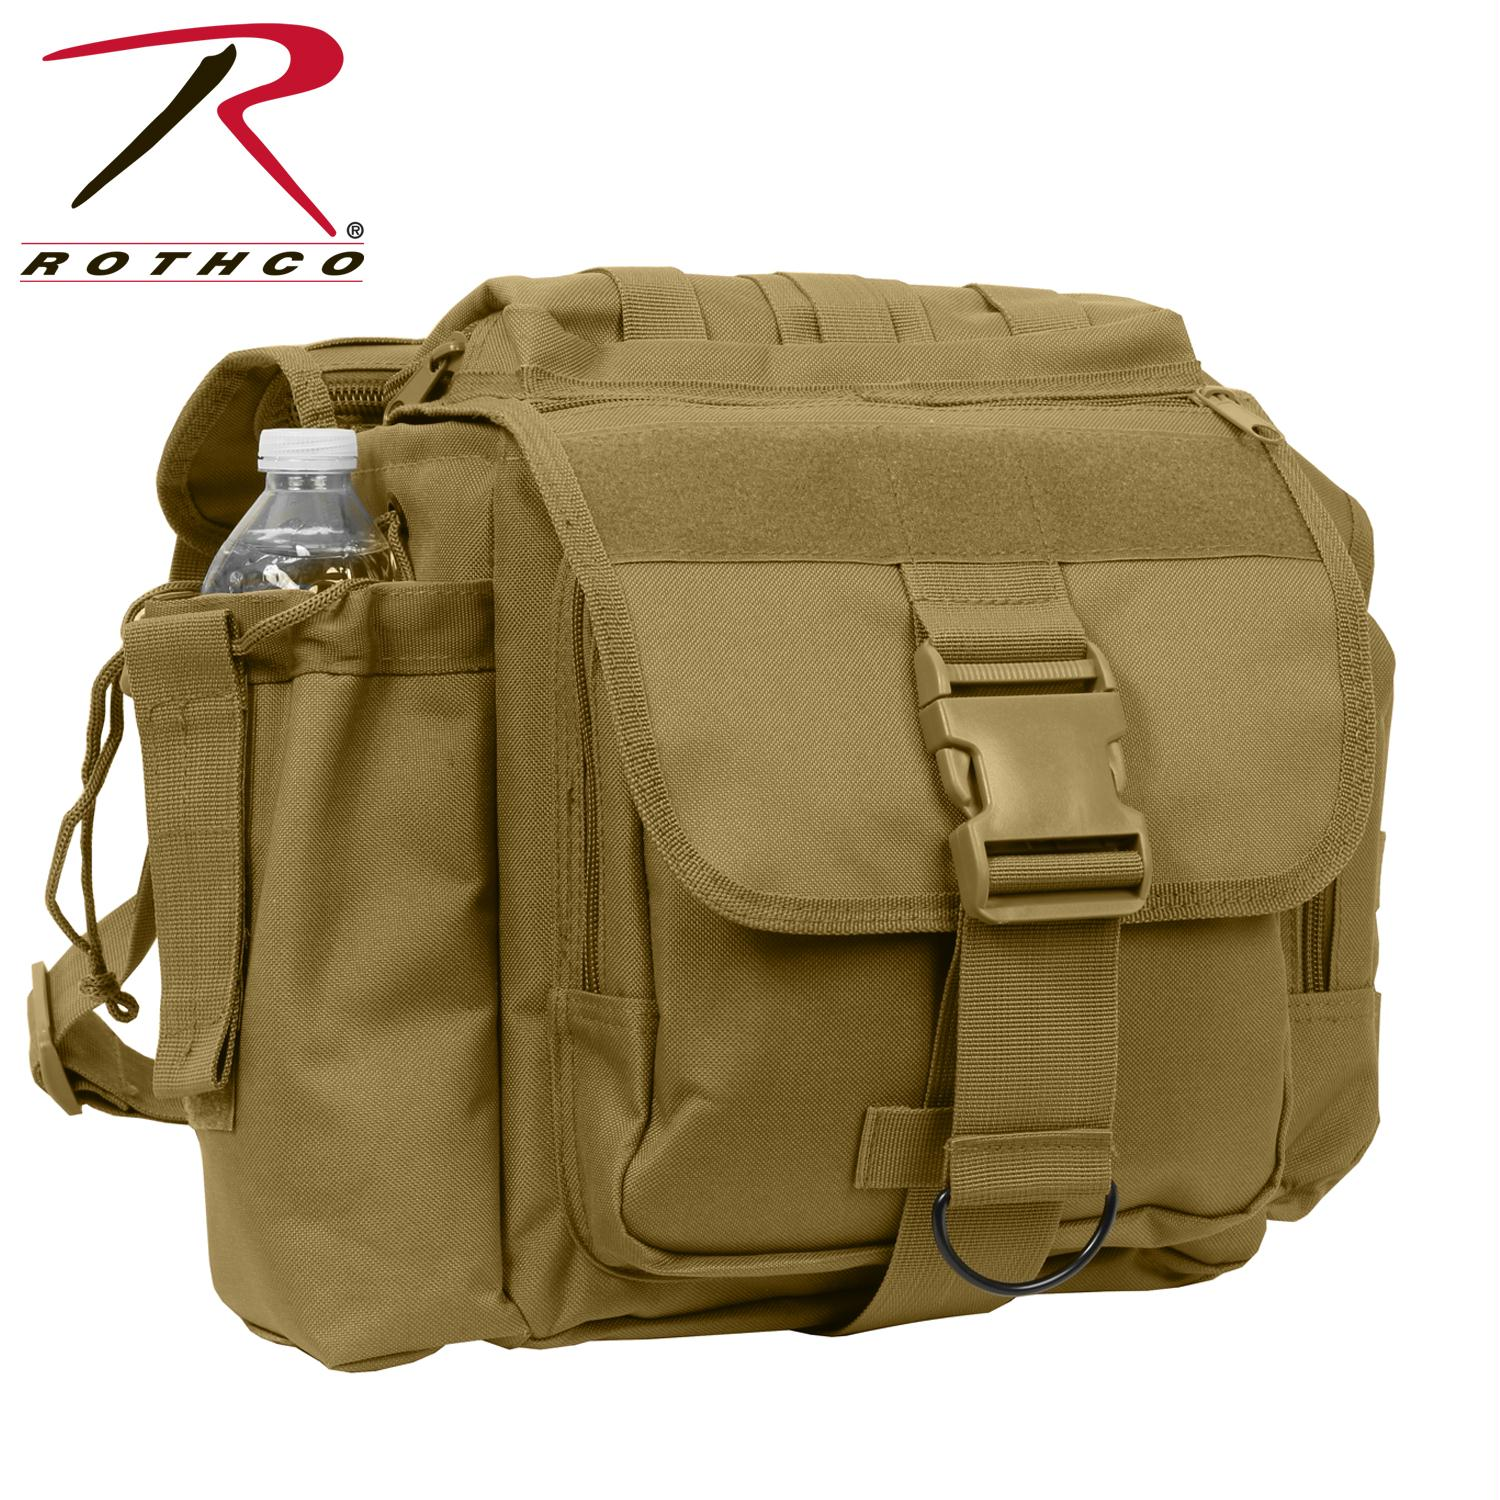 Rothco XL Advanced Tactical Shoulder Bag - Coyote Brown